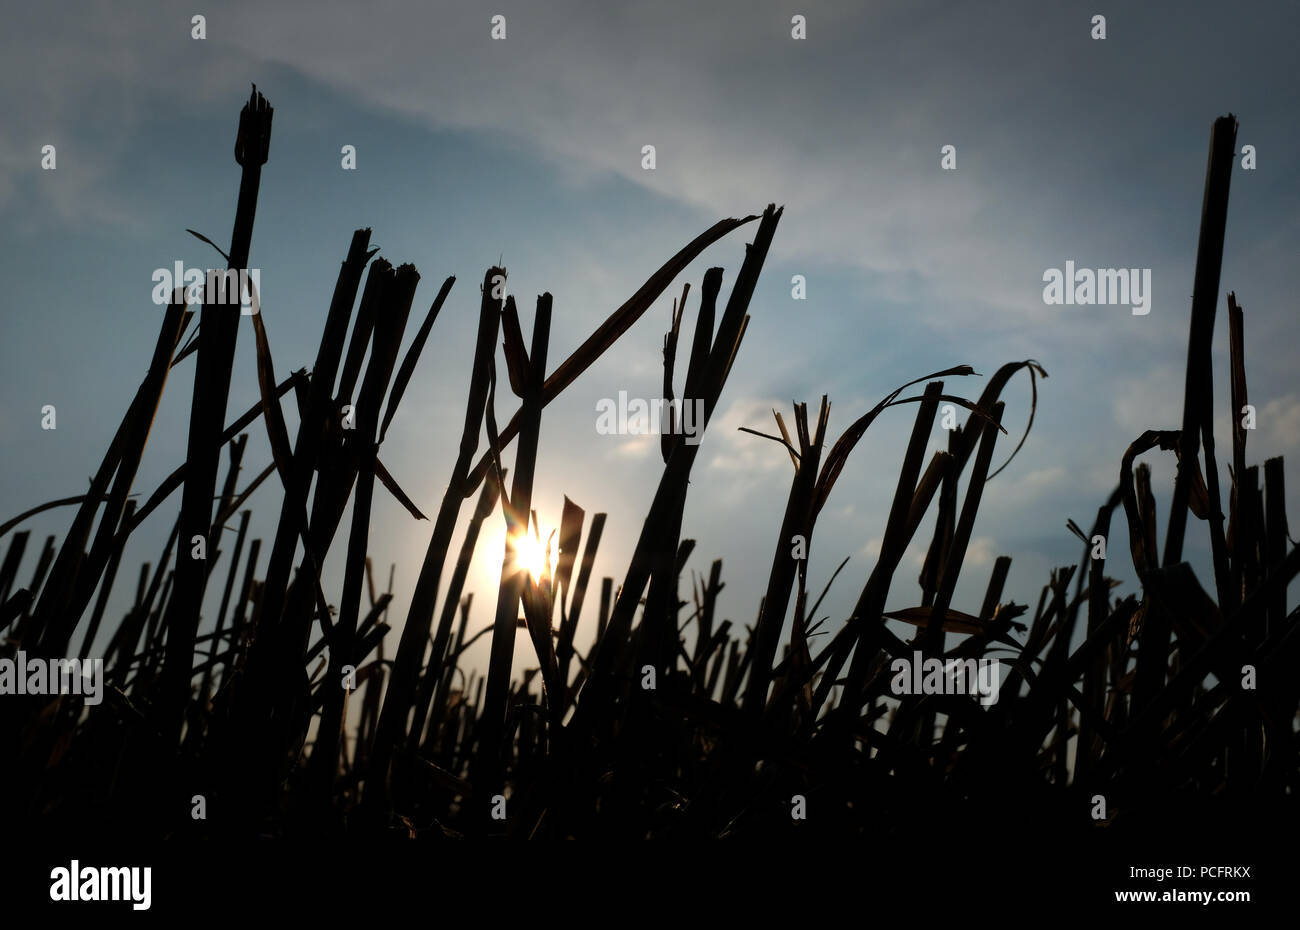 Duisburg, Germanhy. 02nd Aug, 2018. After the wheat harvest, the stalks protrude from the ground in a field. Farmers in many areas of Germany have had to contend with weeks of dry weather. Credit: Martin Gerten/dpa/Alamy Live News Stock Photo